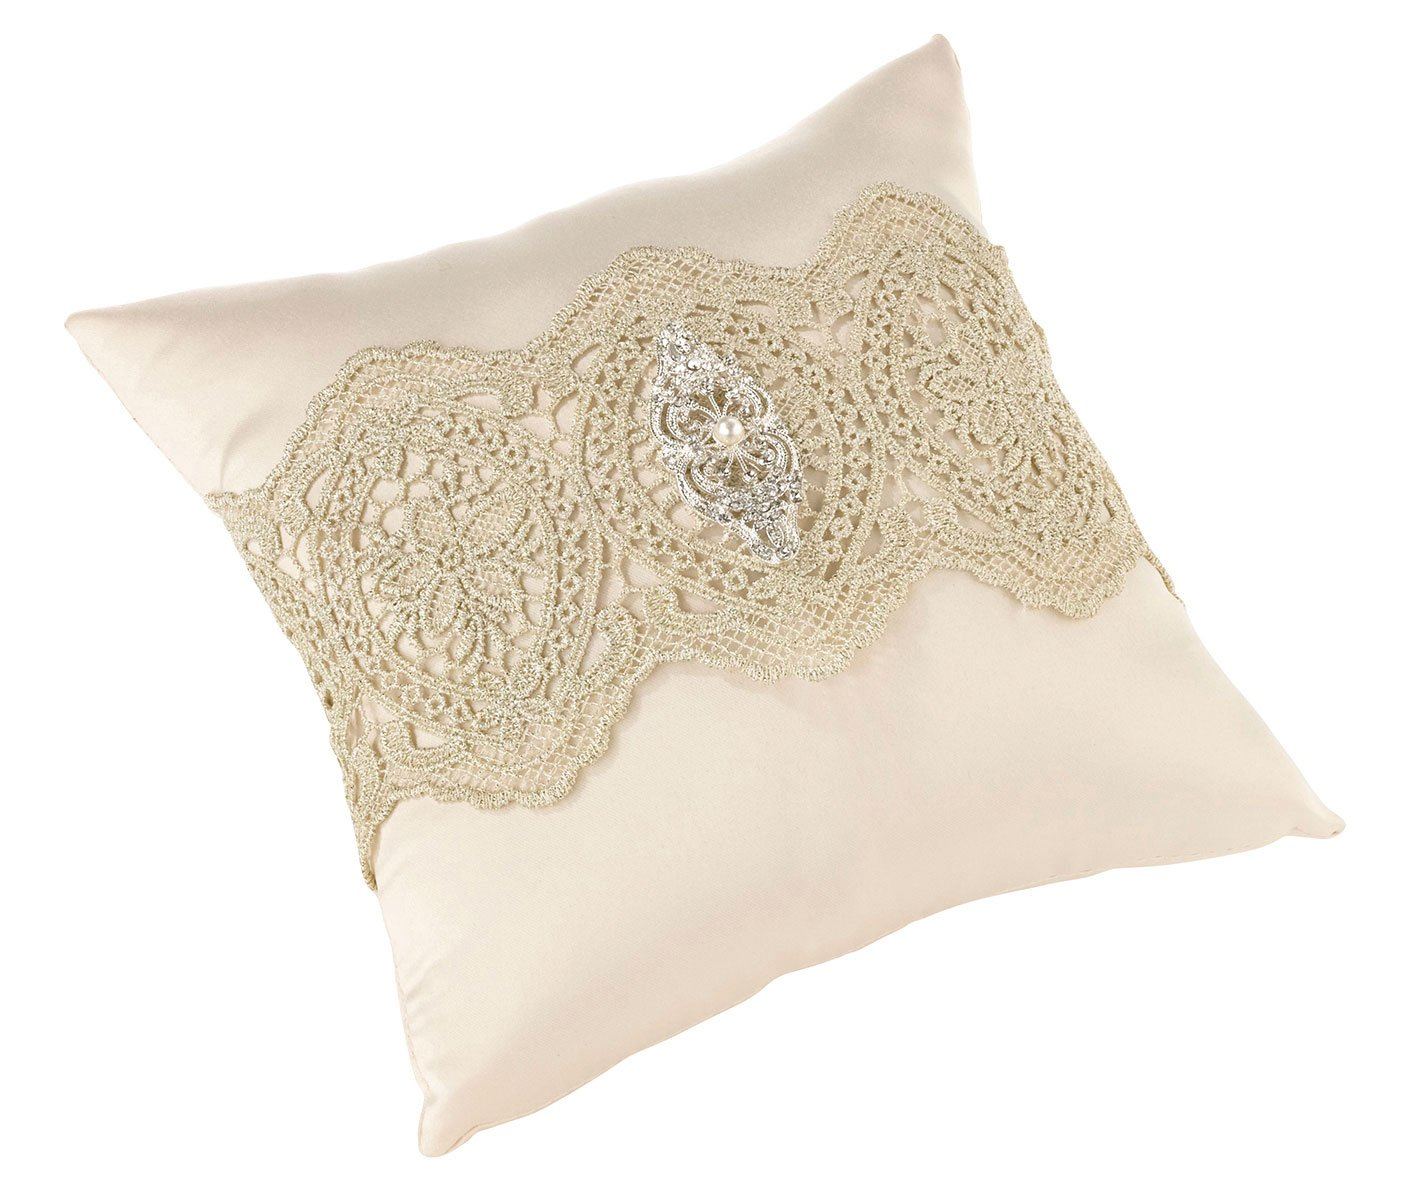 Lillian Rose Vintage Gold Lace Ivory Satin Wedding Ring Pillow by Lillian Rose